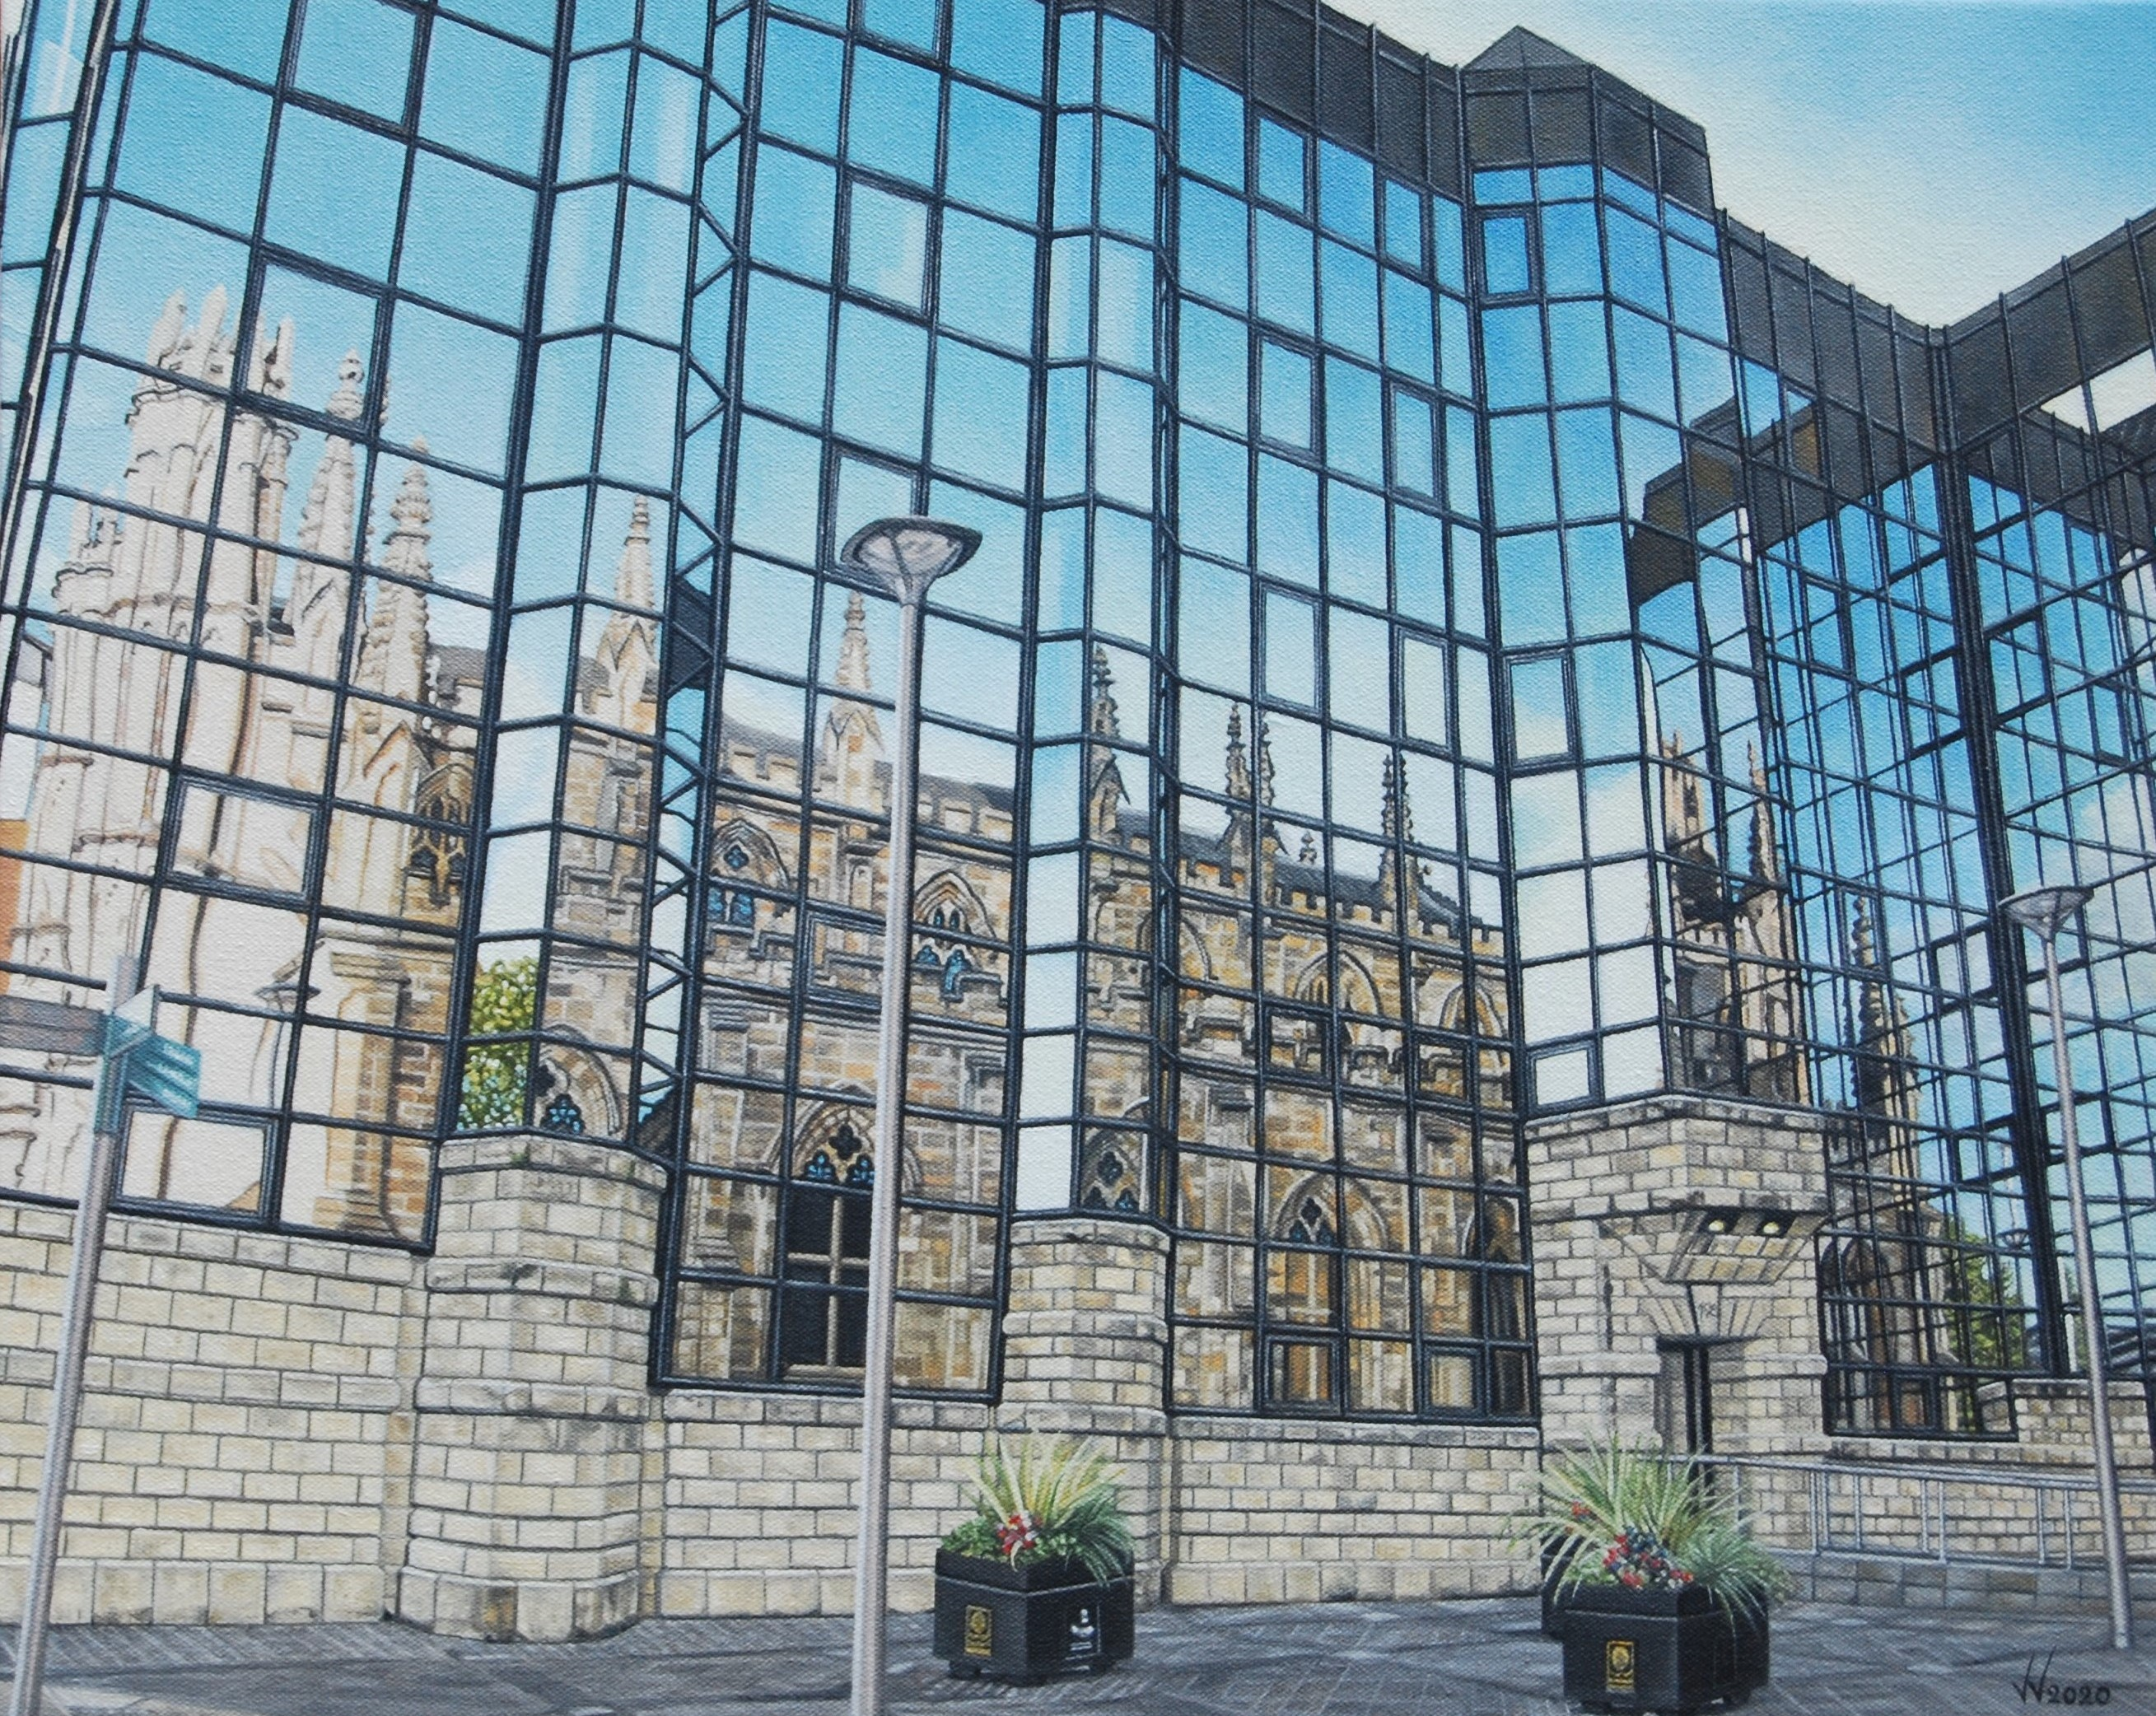 Whilst I was in Glasgow this reflection attracted my attention.